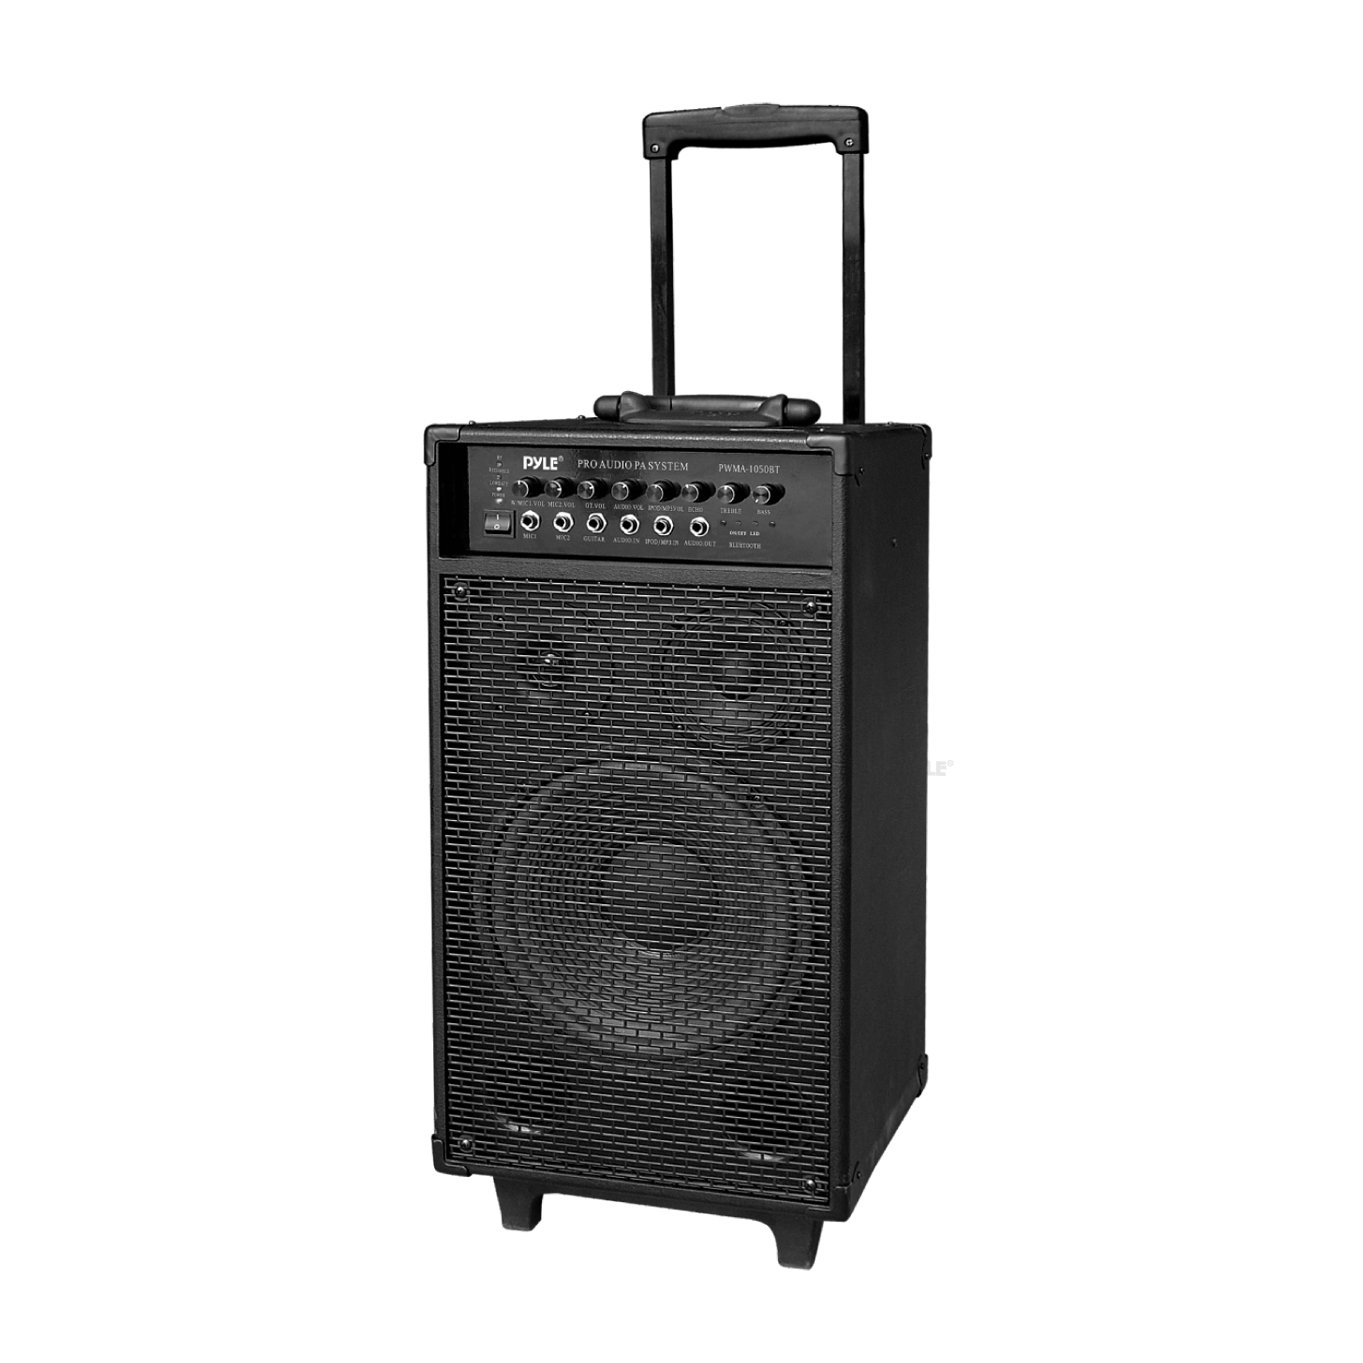 Pyle Outdoor Portable Wireless Bluetooth PA Loud speaker Stereo Sound System with 10 inch Subwoofer, Mid-Range Tweeter, Rechargeable Battery, FM Radio, USB / SD Reader, Microphone, Remote - PWMA1050BT